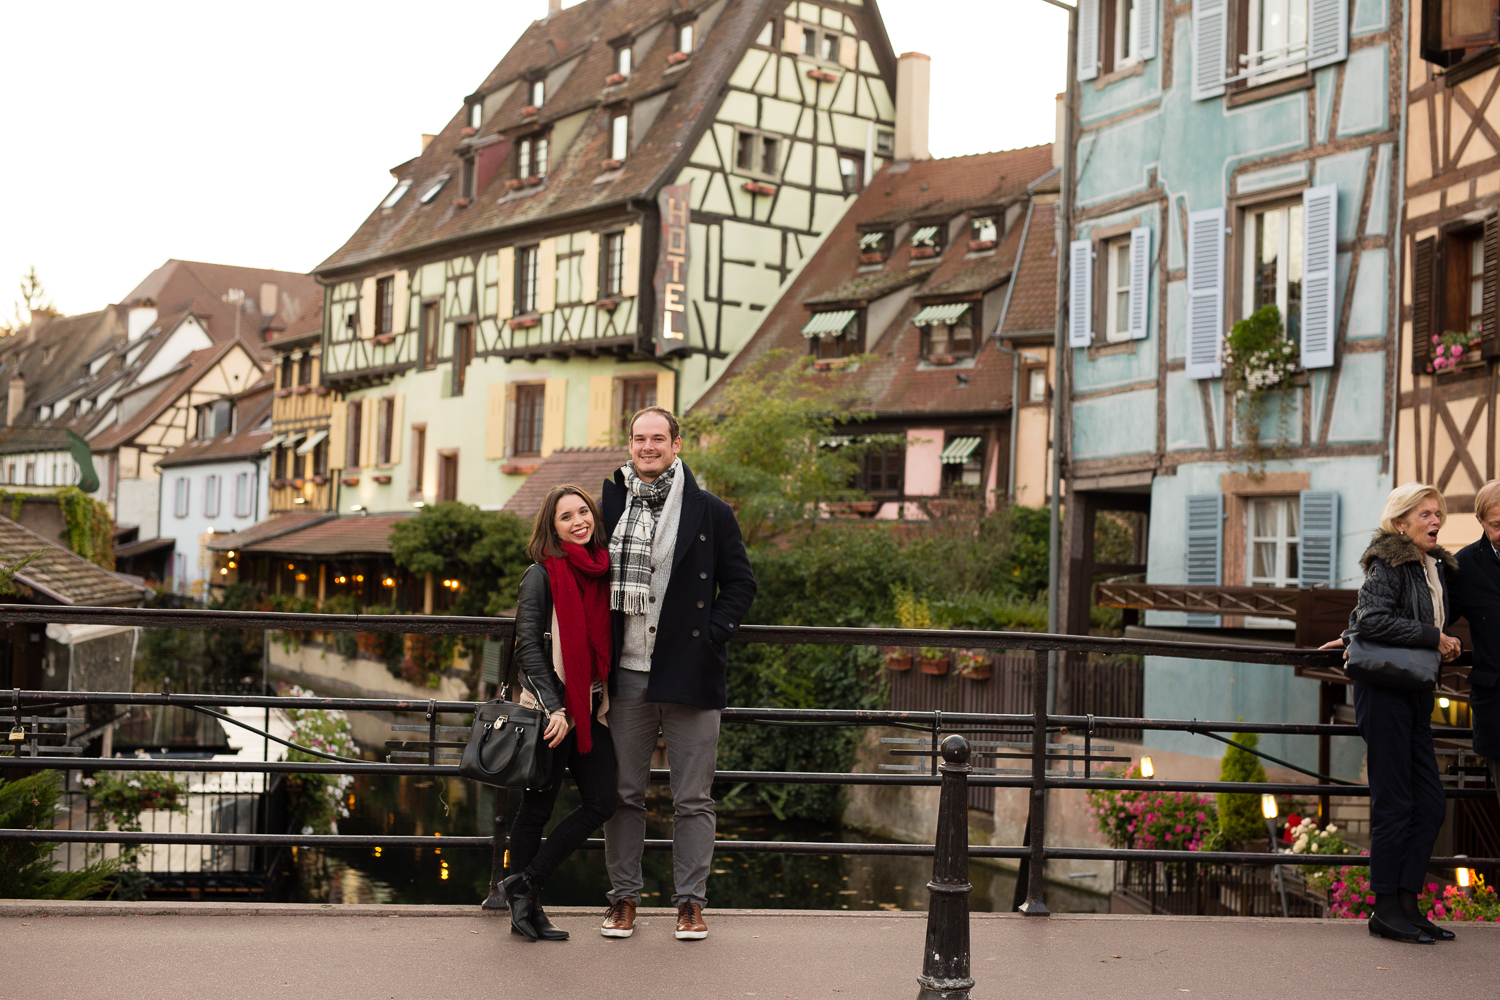 weekend-in-alsace-Colmar-best-place-to-visit-france-5.jpg